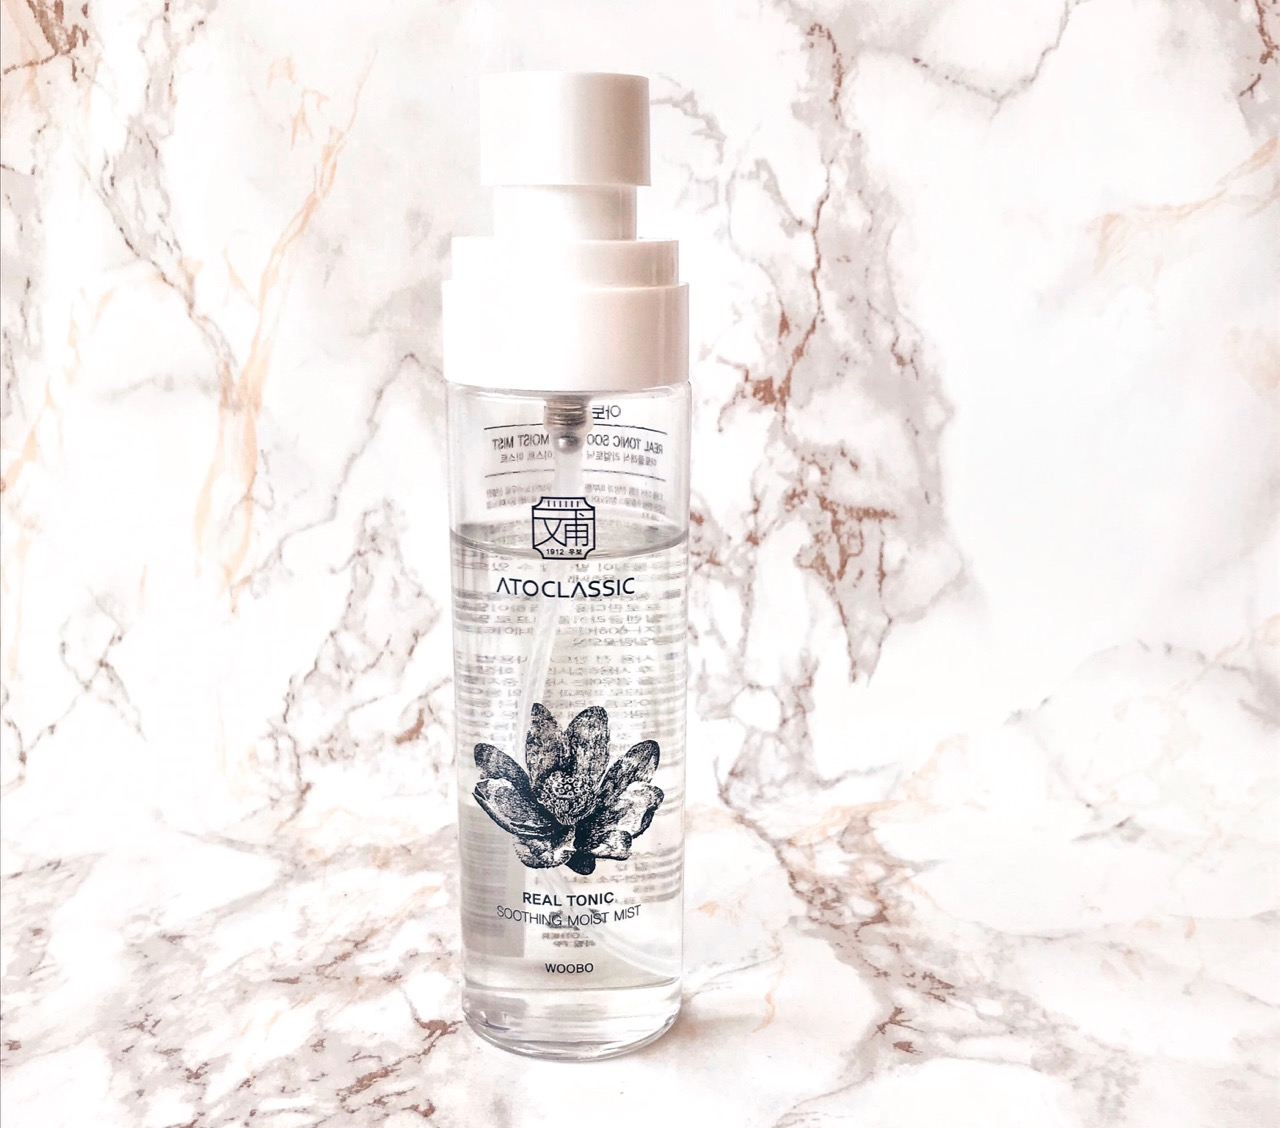 Atoclassic Real Tonic Soothing Moist Mist review